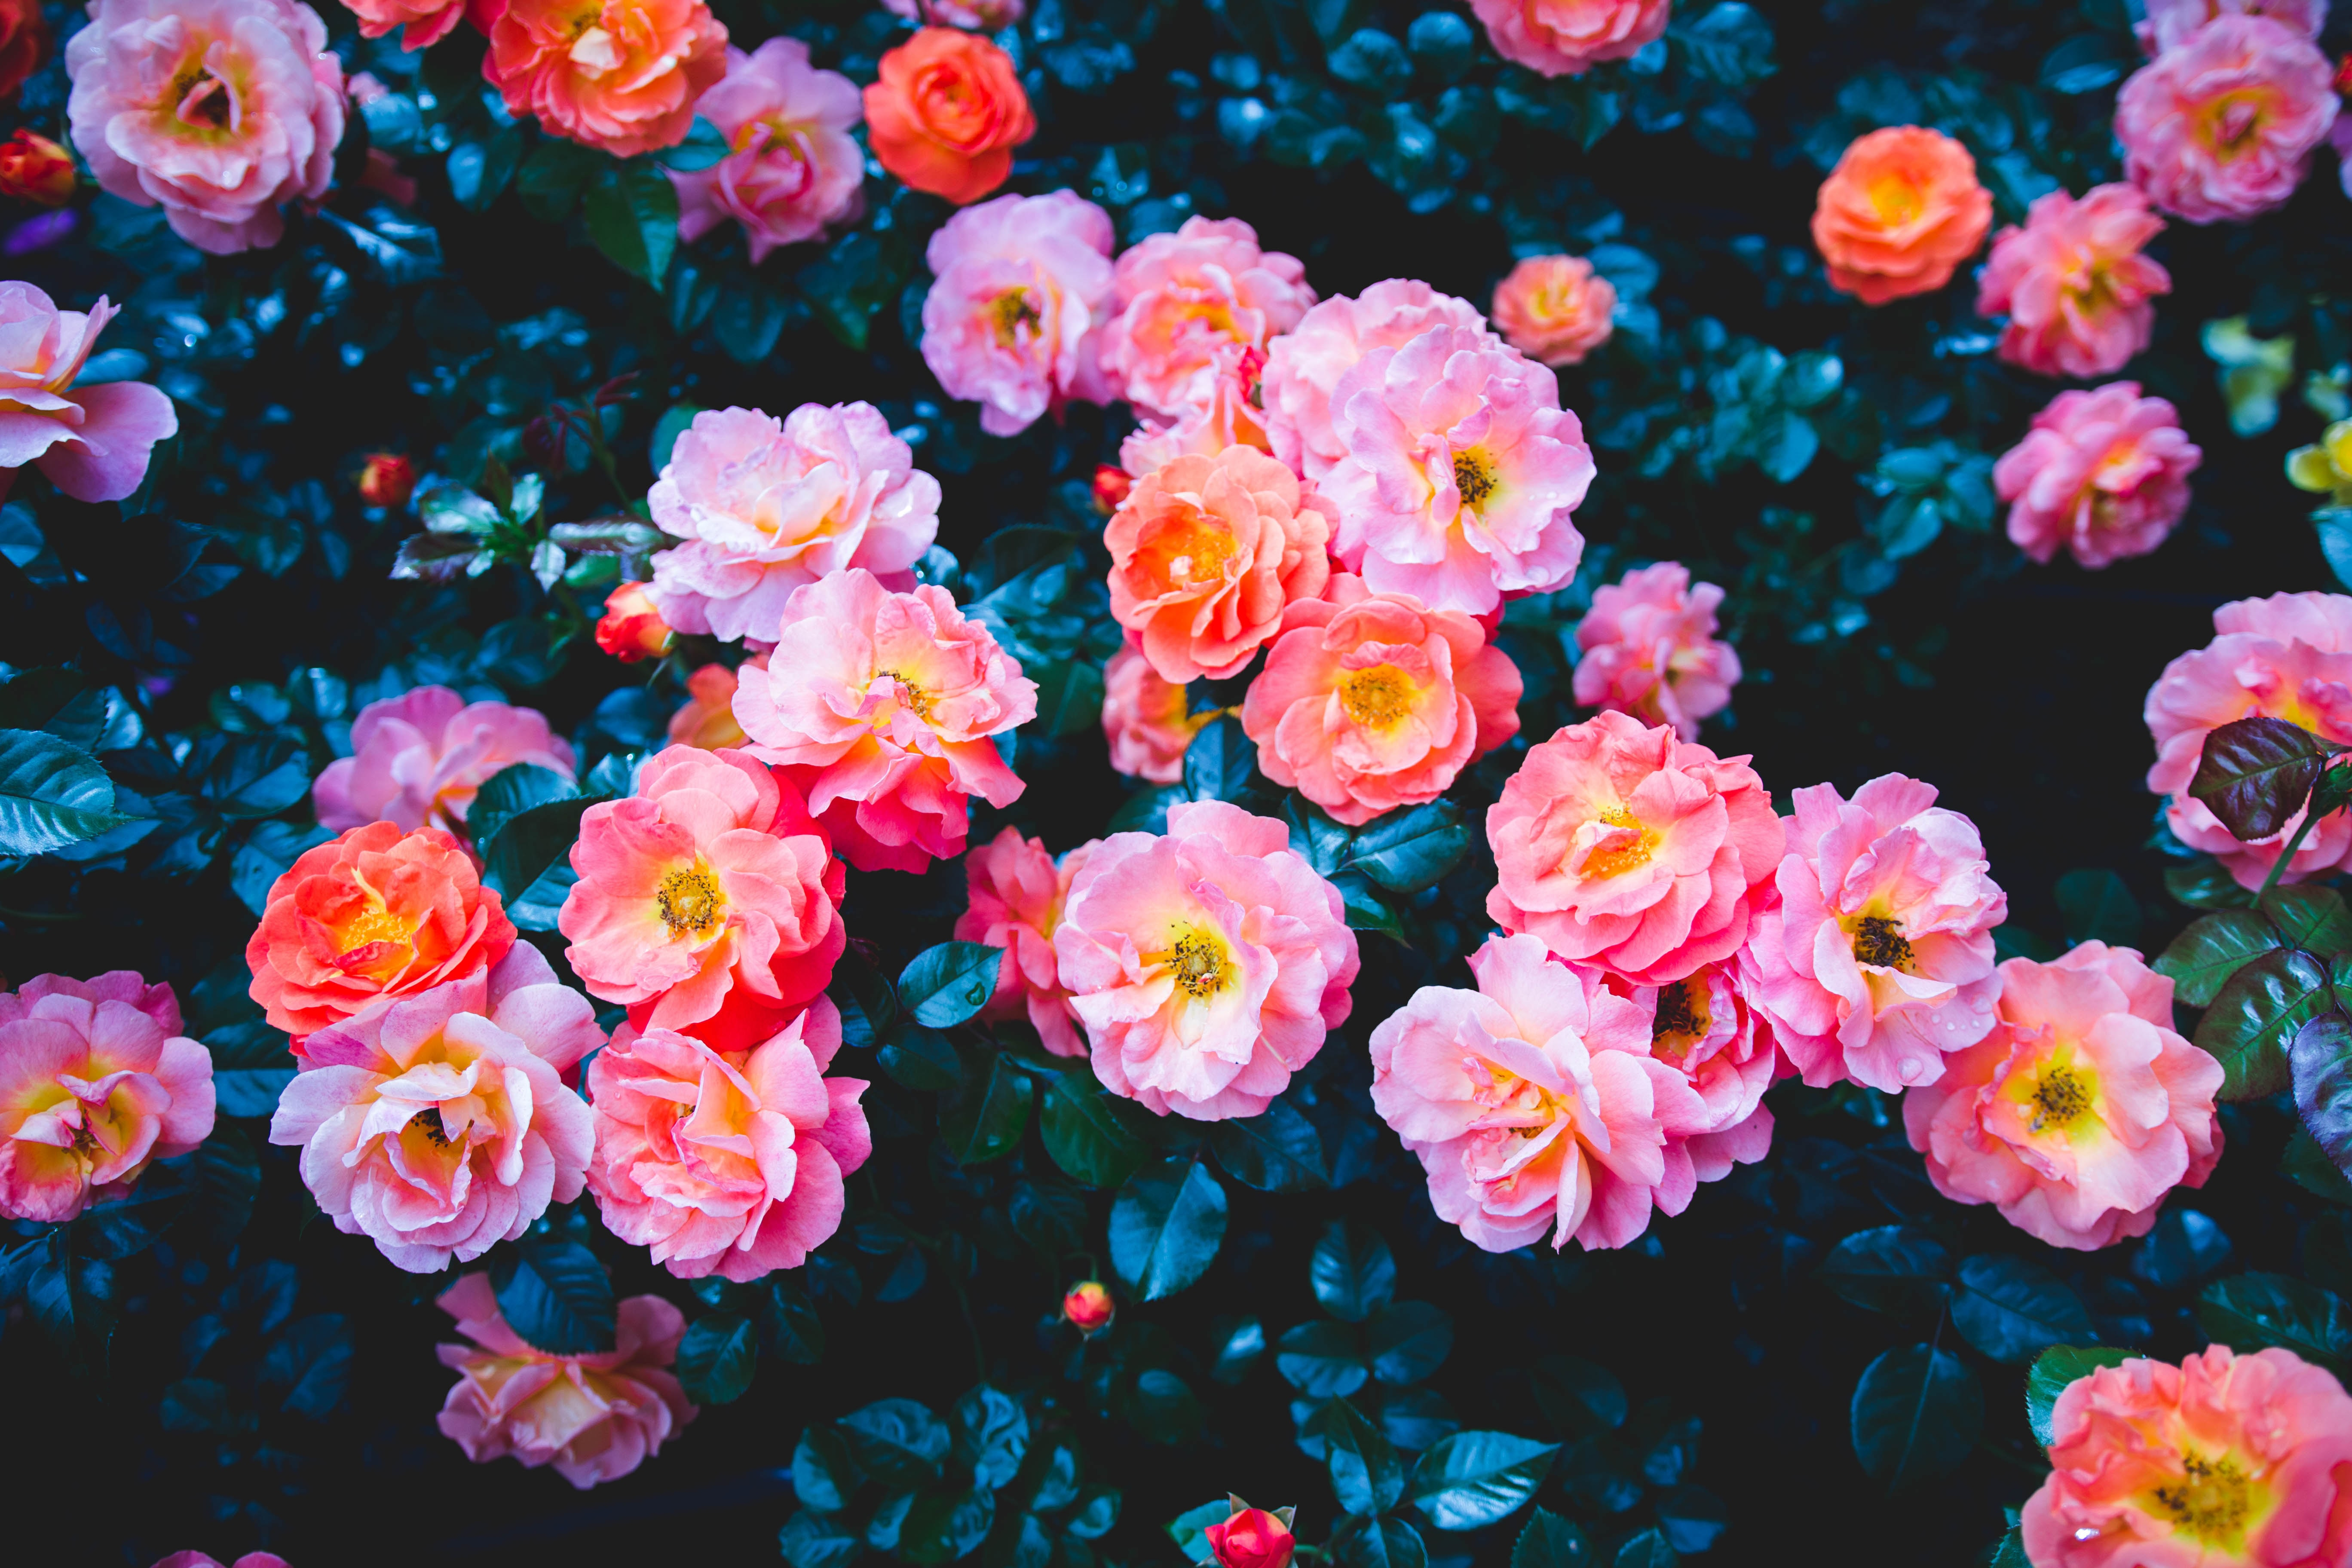 124151 download wallpaper Flowers, Pink, Bloom, Flowering, Bush, Roses screensavers and pictures for free